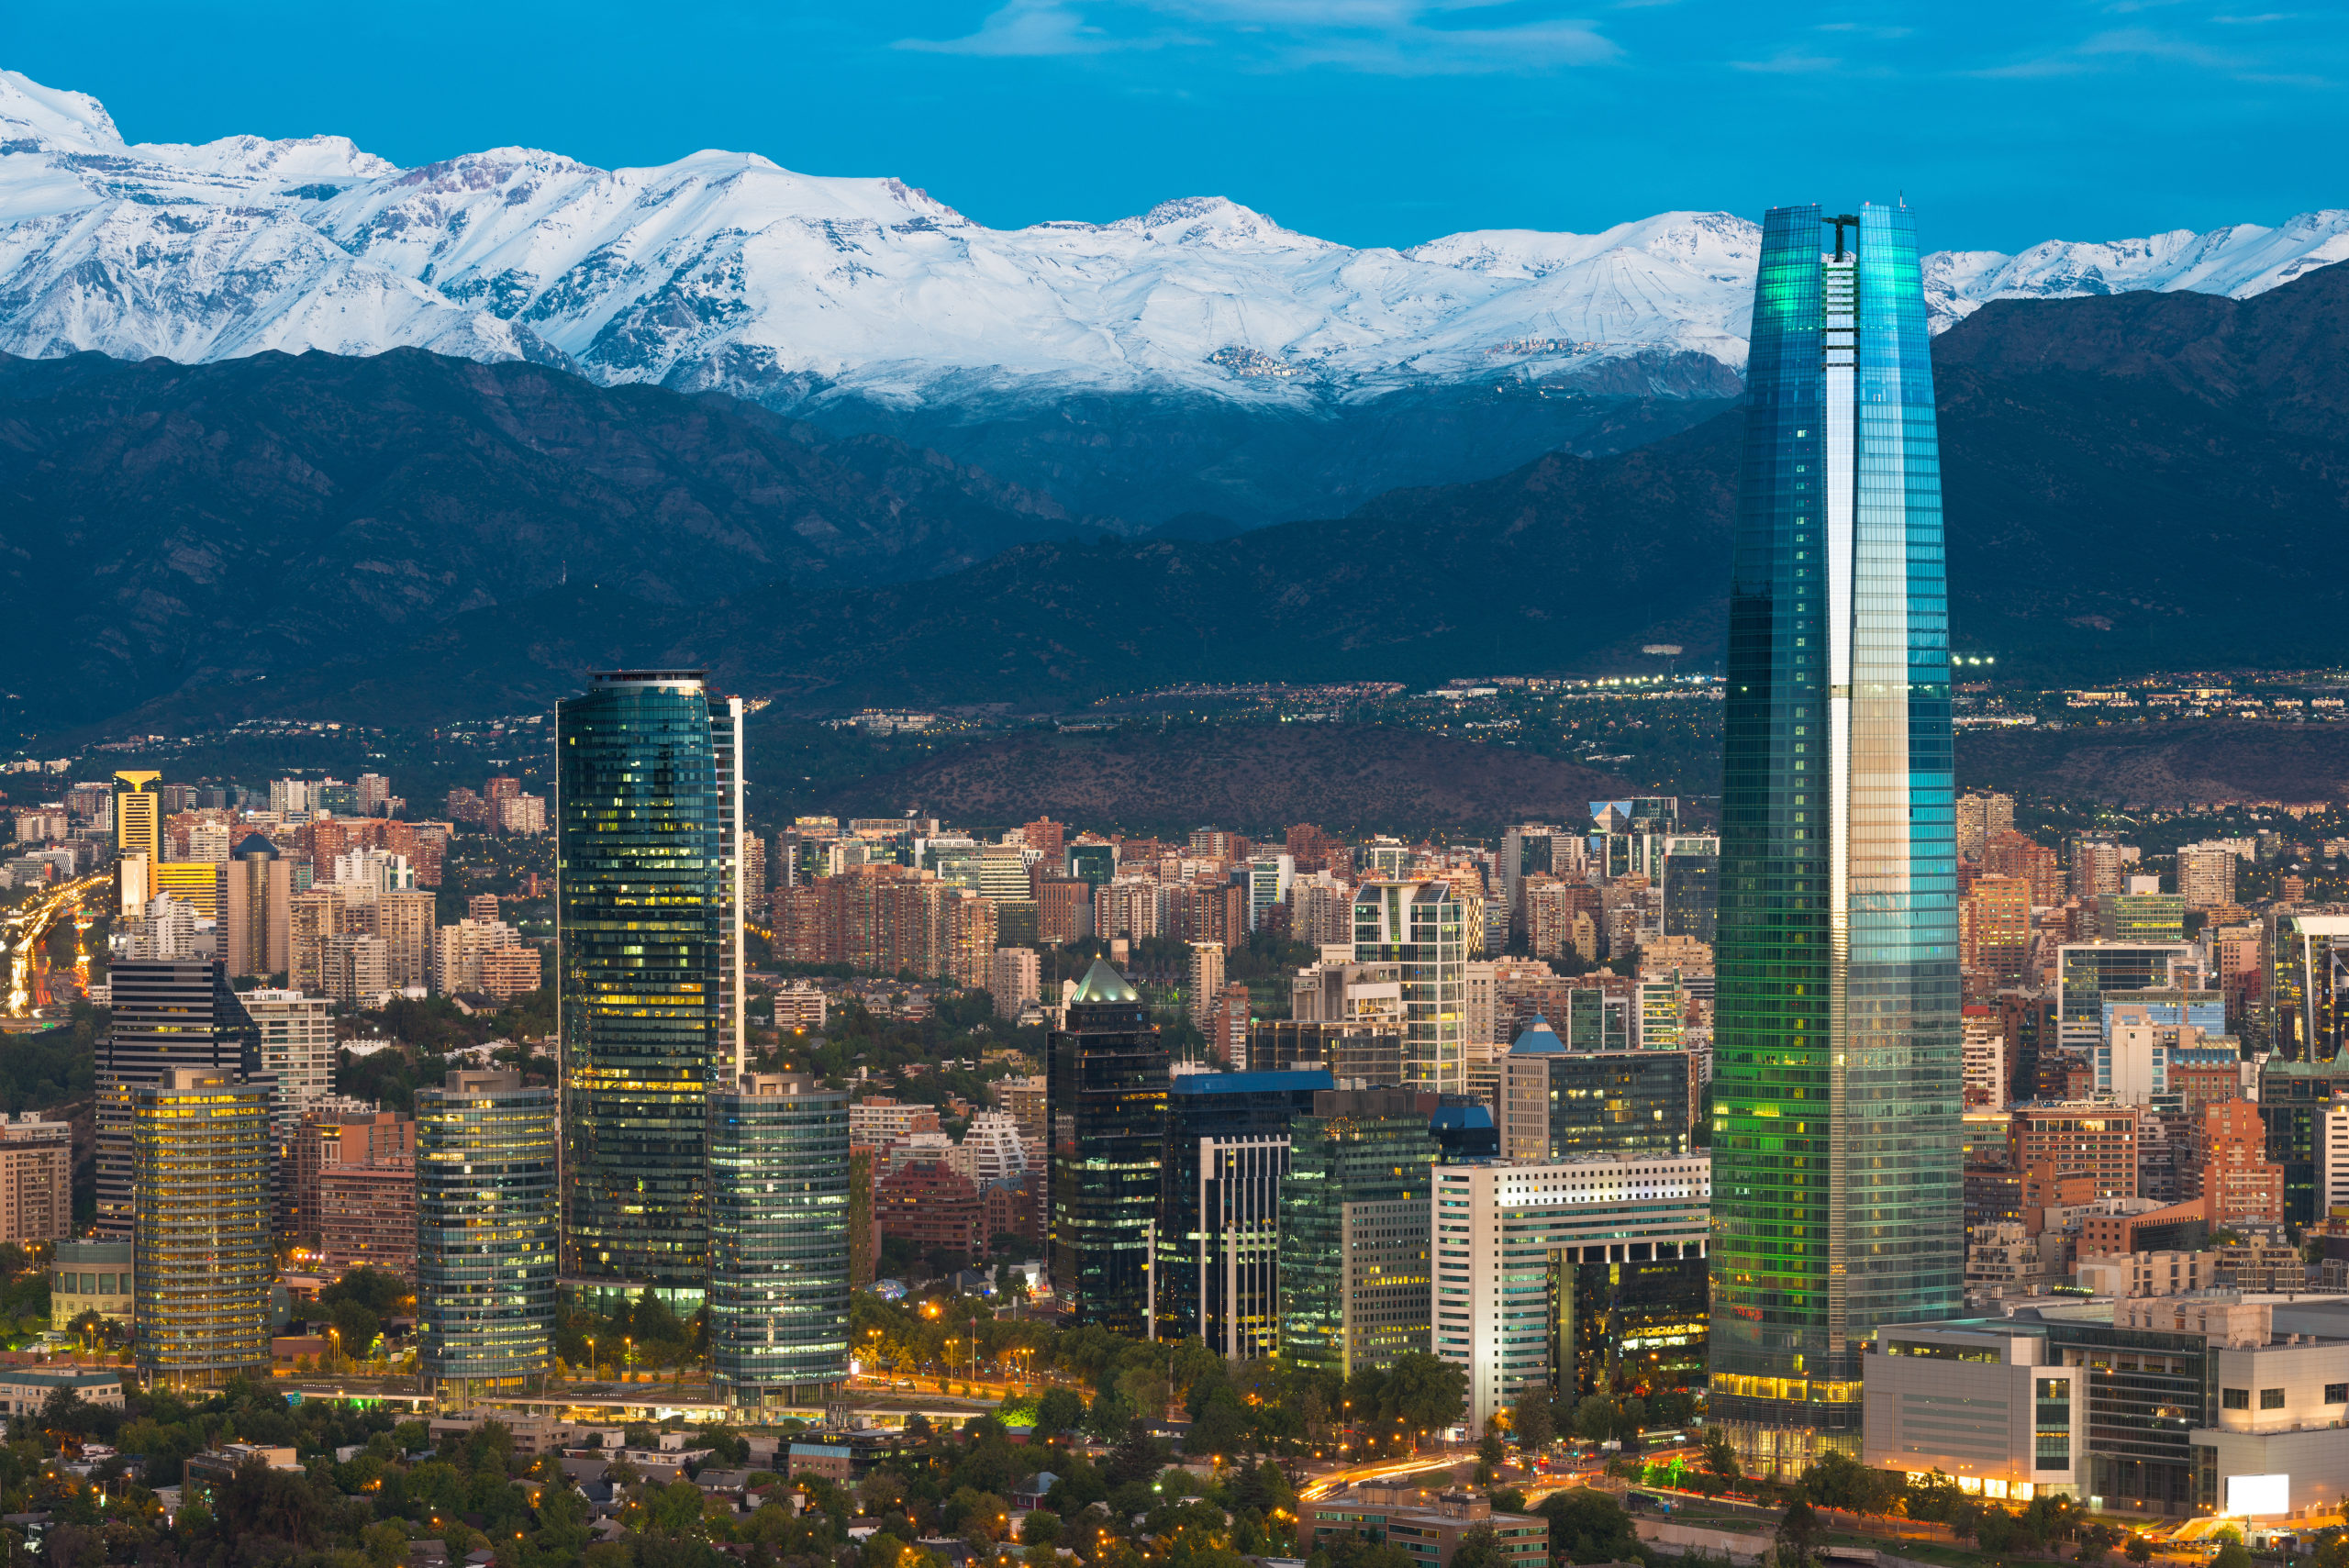 The skyline of Santiago de Chile at the bottom of the Andes Mountains